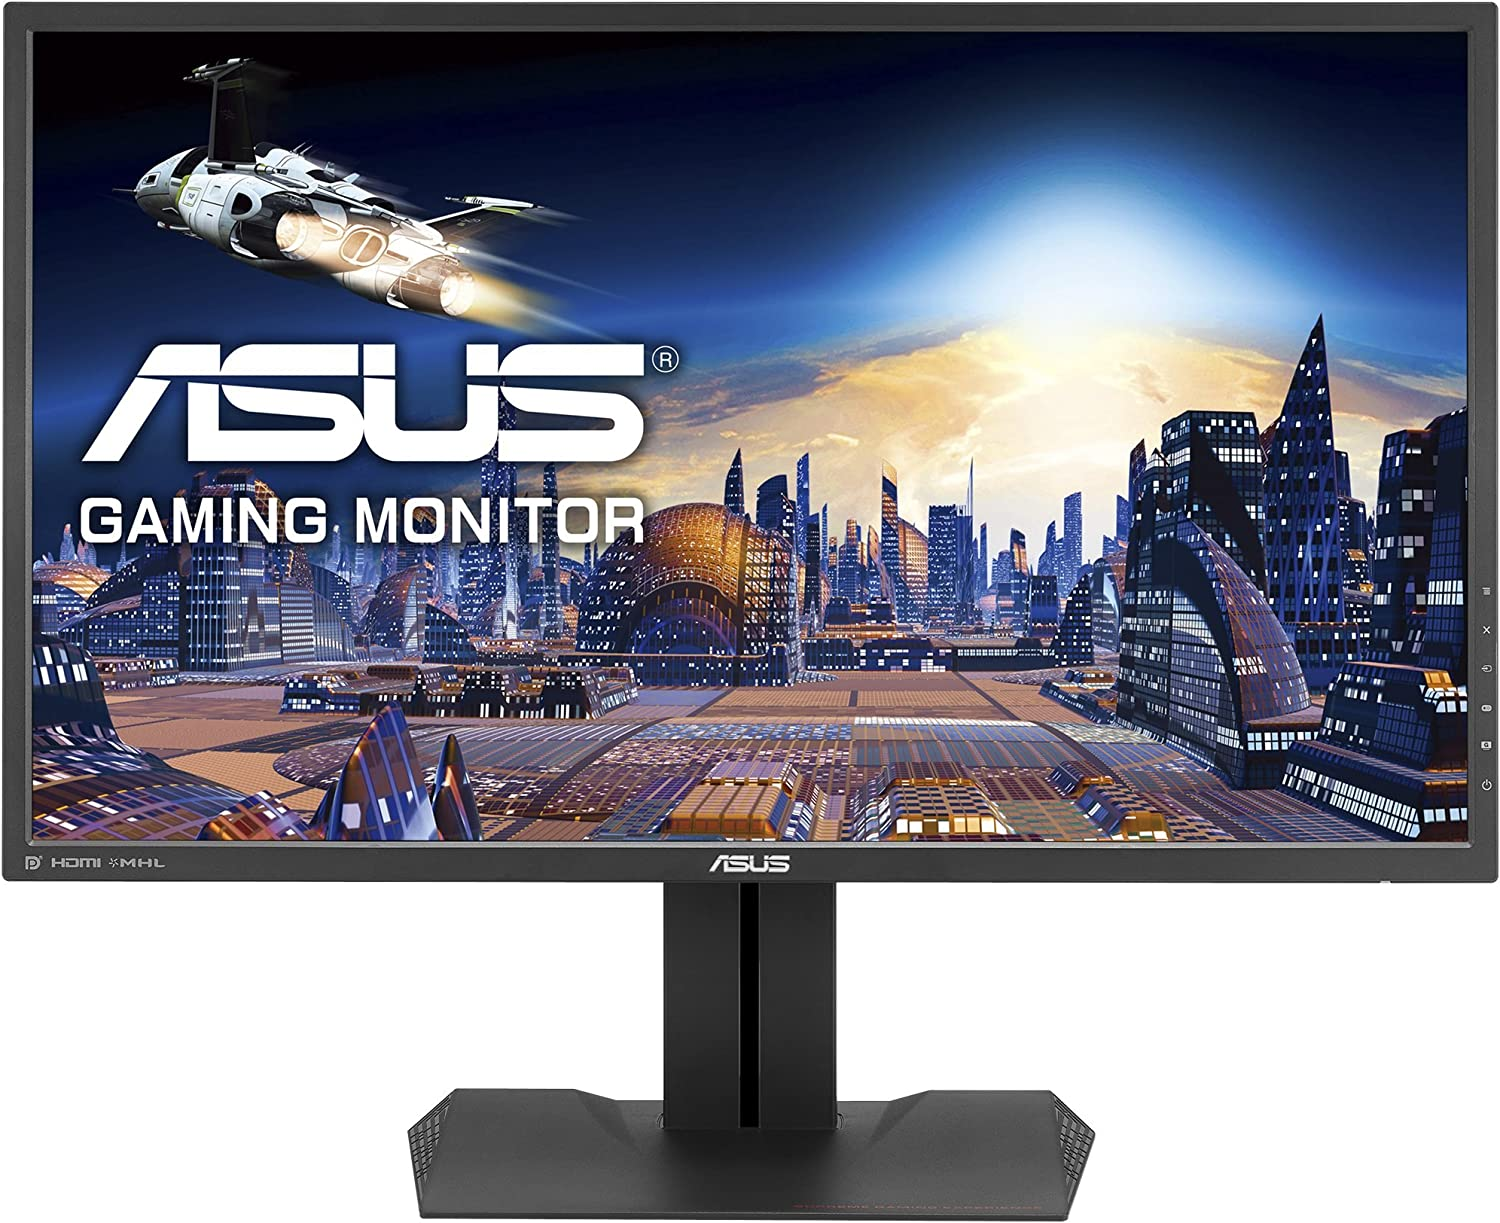 ASUS 27-Inch 2K 144Hz ultrawide monitor